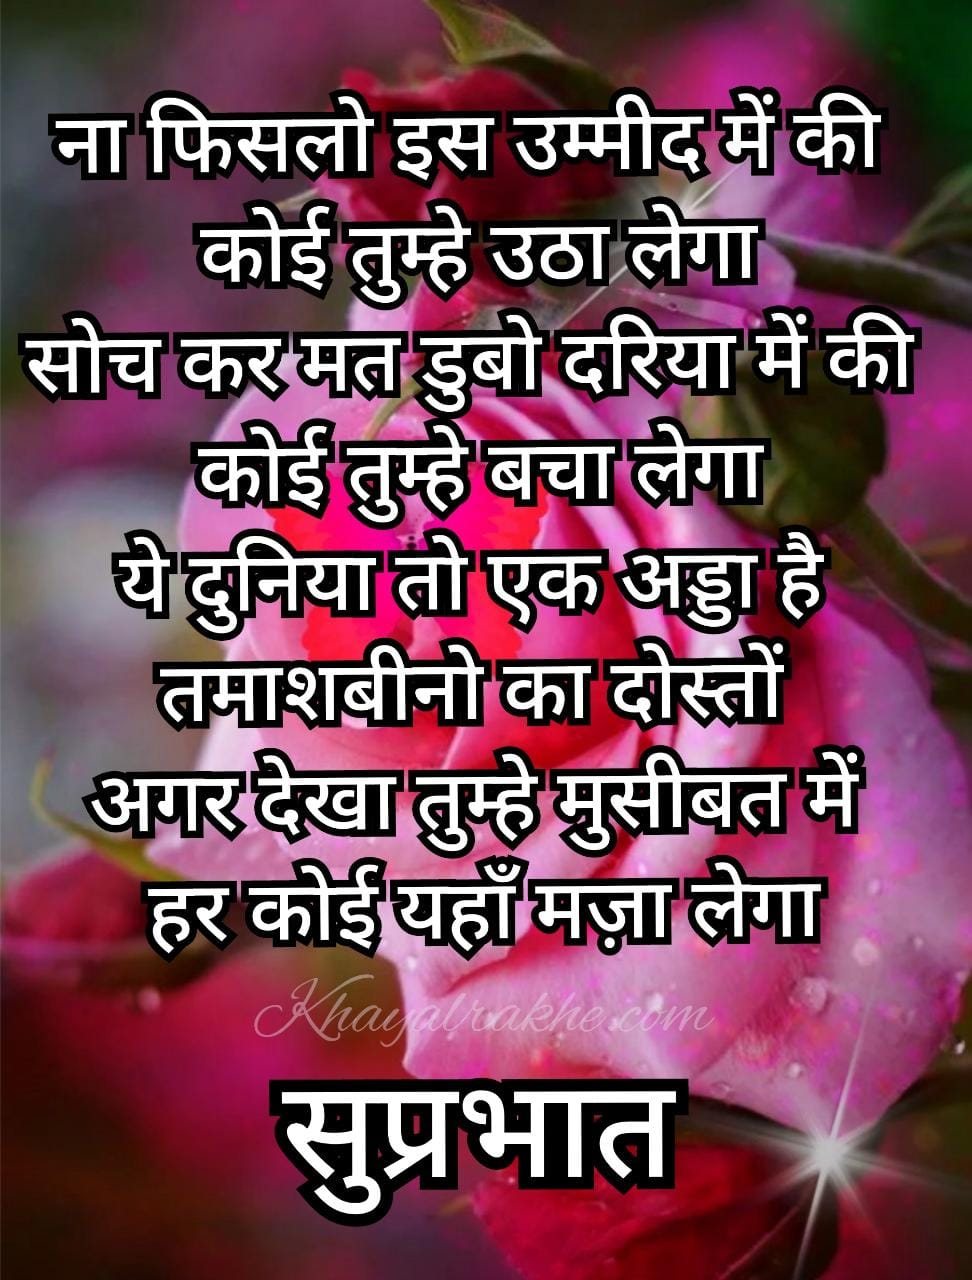 Amazing Good Morning Quotes in Hindi